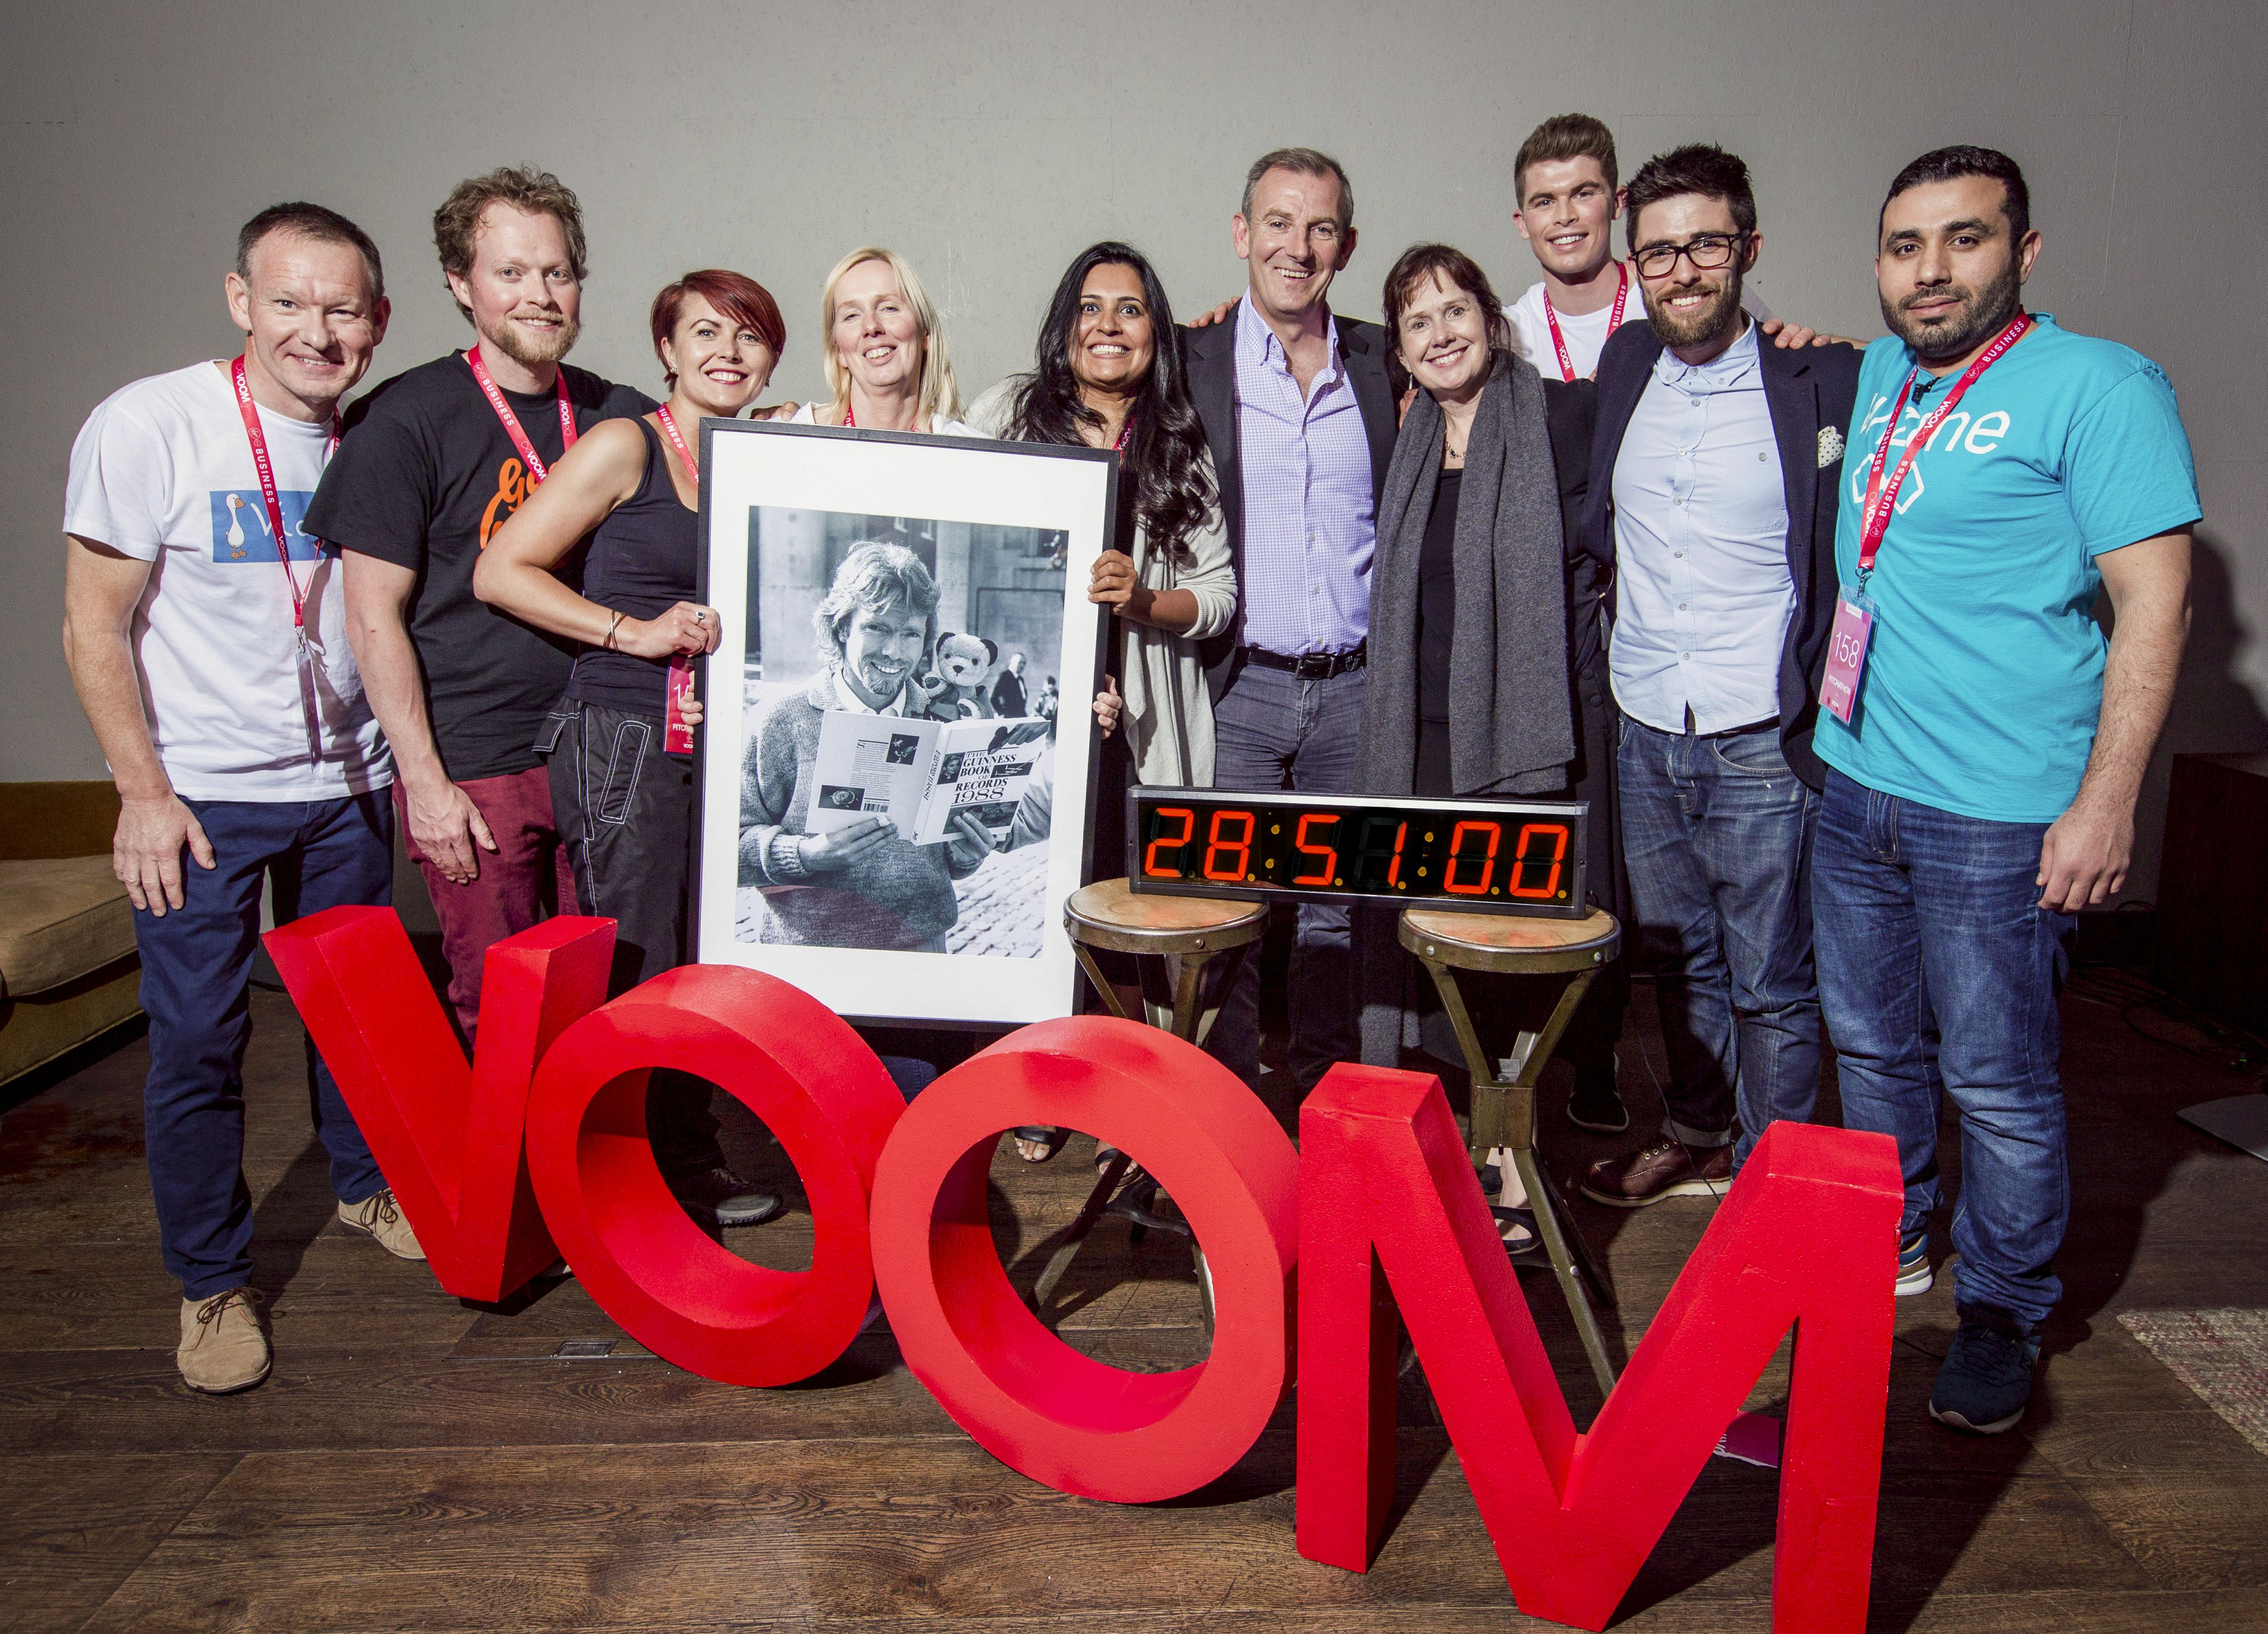 29-hour pitching frenzy results in Guinness World Record for Virgin Media Business